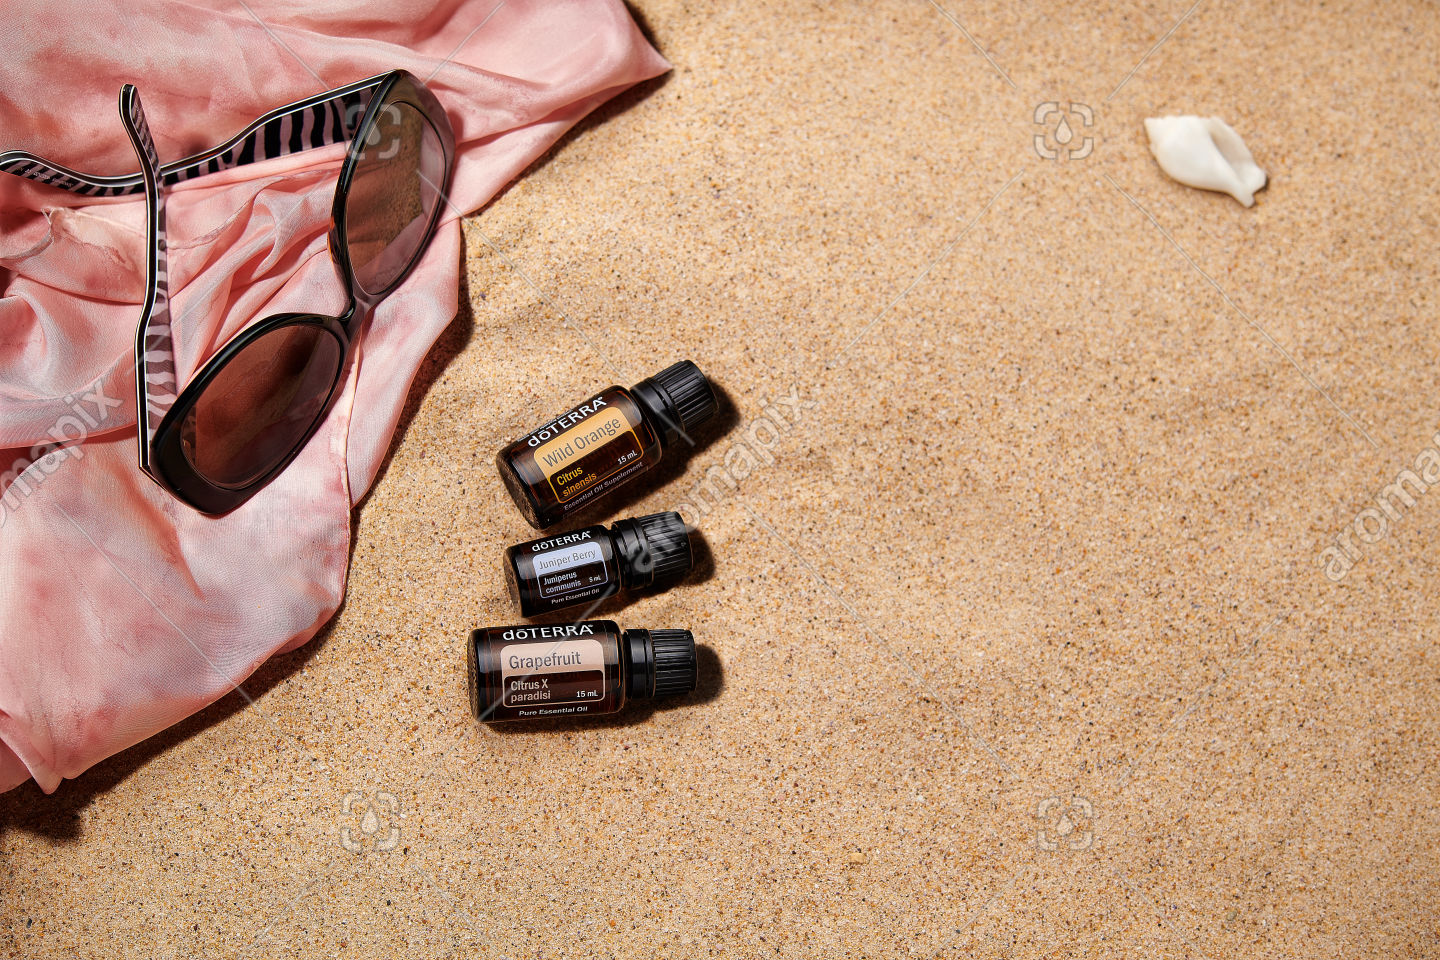 doTERRA Wild Orange, Juniper Berry and Grapefruit with accessories on sand